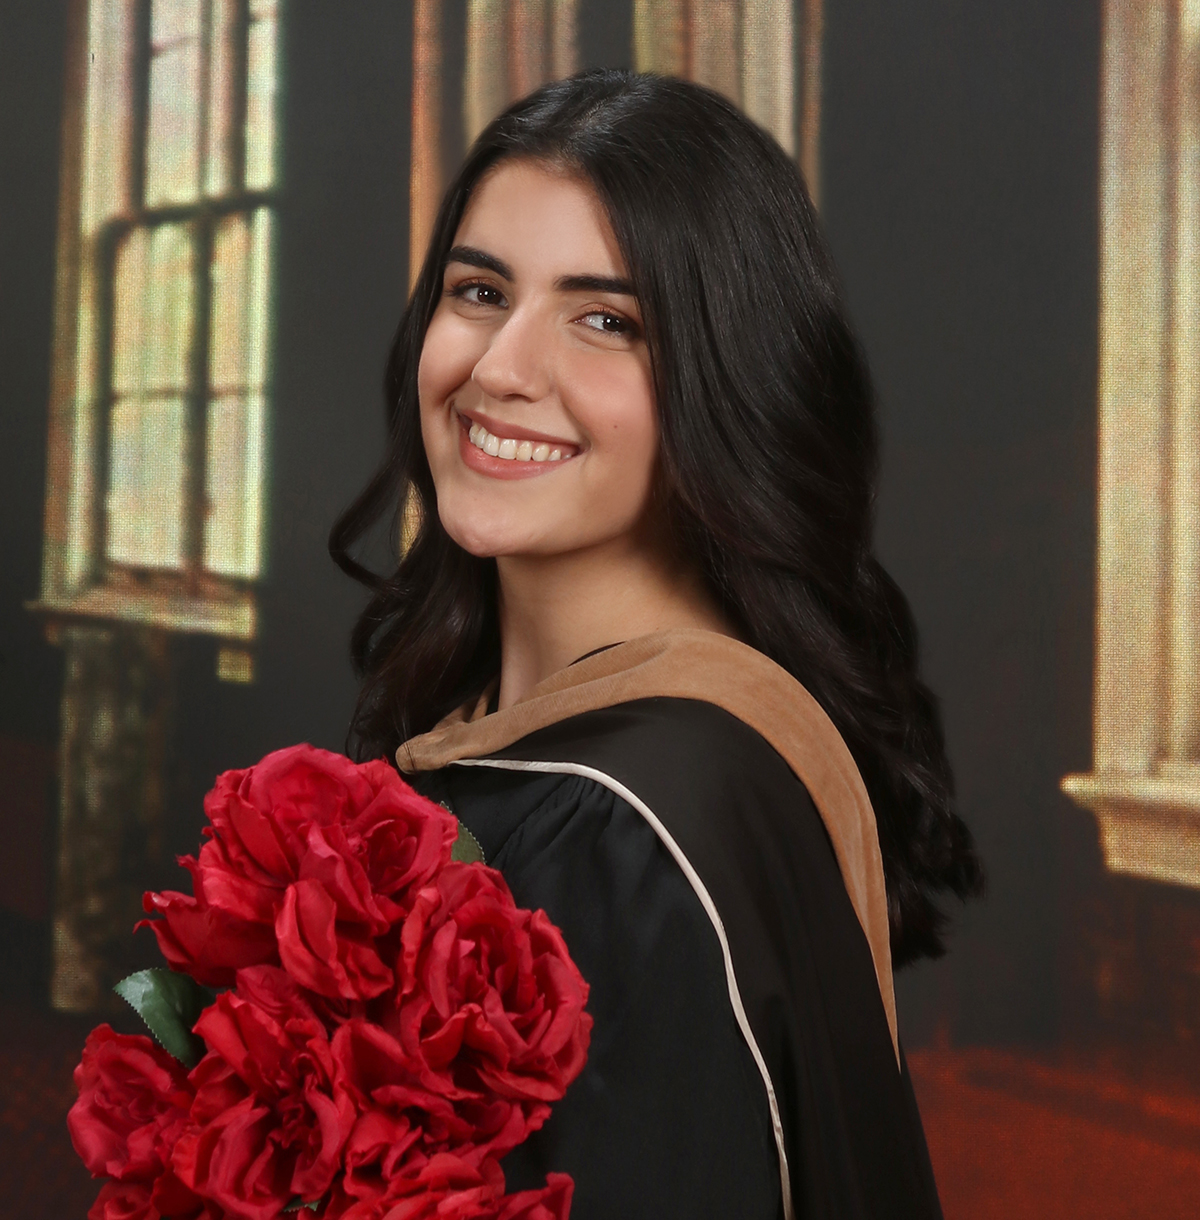 Lina in her graduation gown and flowers